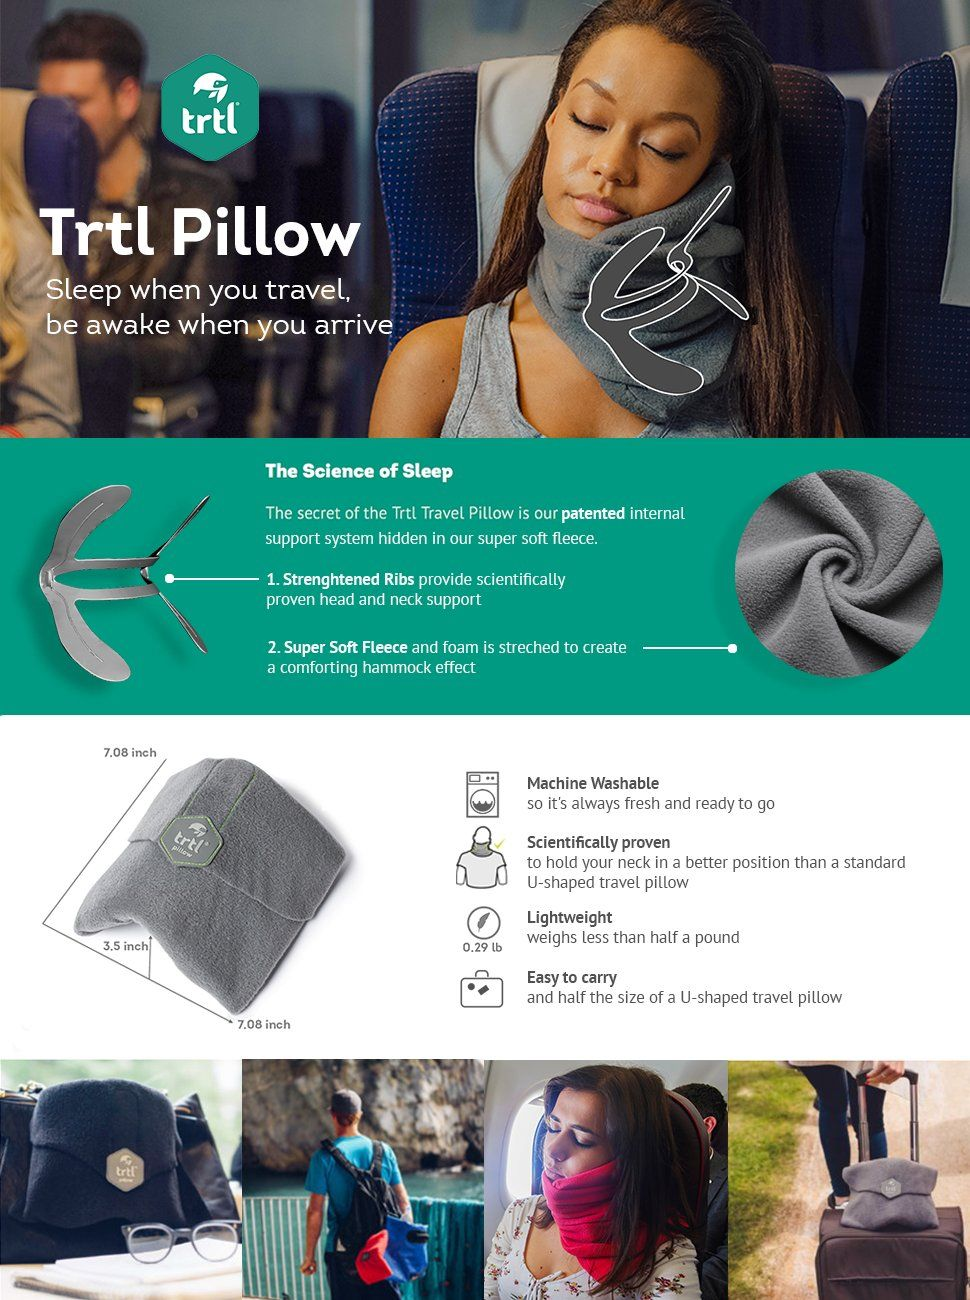 Home Design U-neck Travel Support Pillow Part - 29: AmazonSmile: Trtl Pillow - Scientifically Proven Super Soft Neck Support  Travel Pillow U2013 Machine Washable